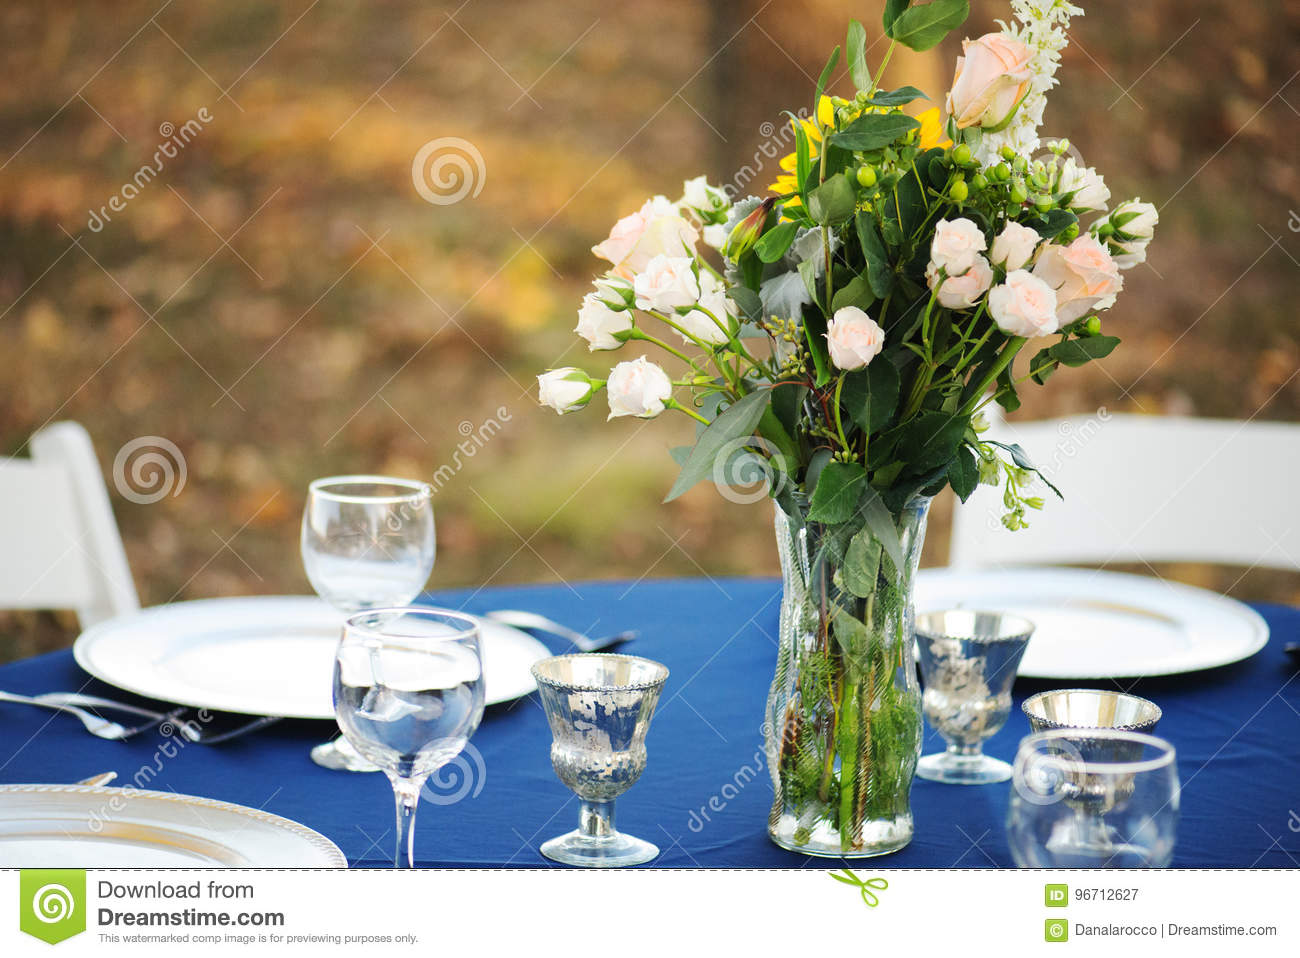 Wedding Table Setting With Pink Rose Bouquet Stock Image Image Of